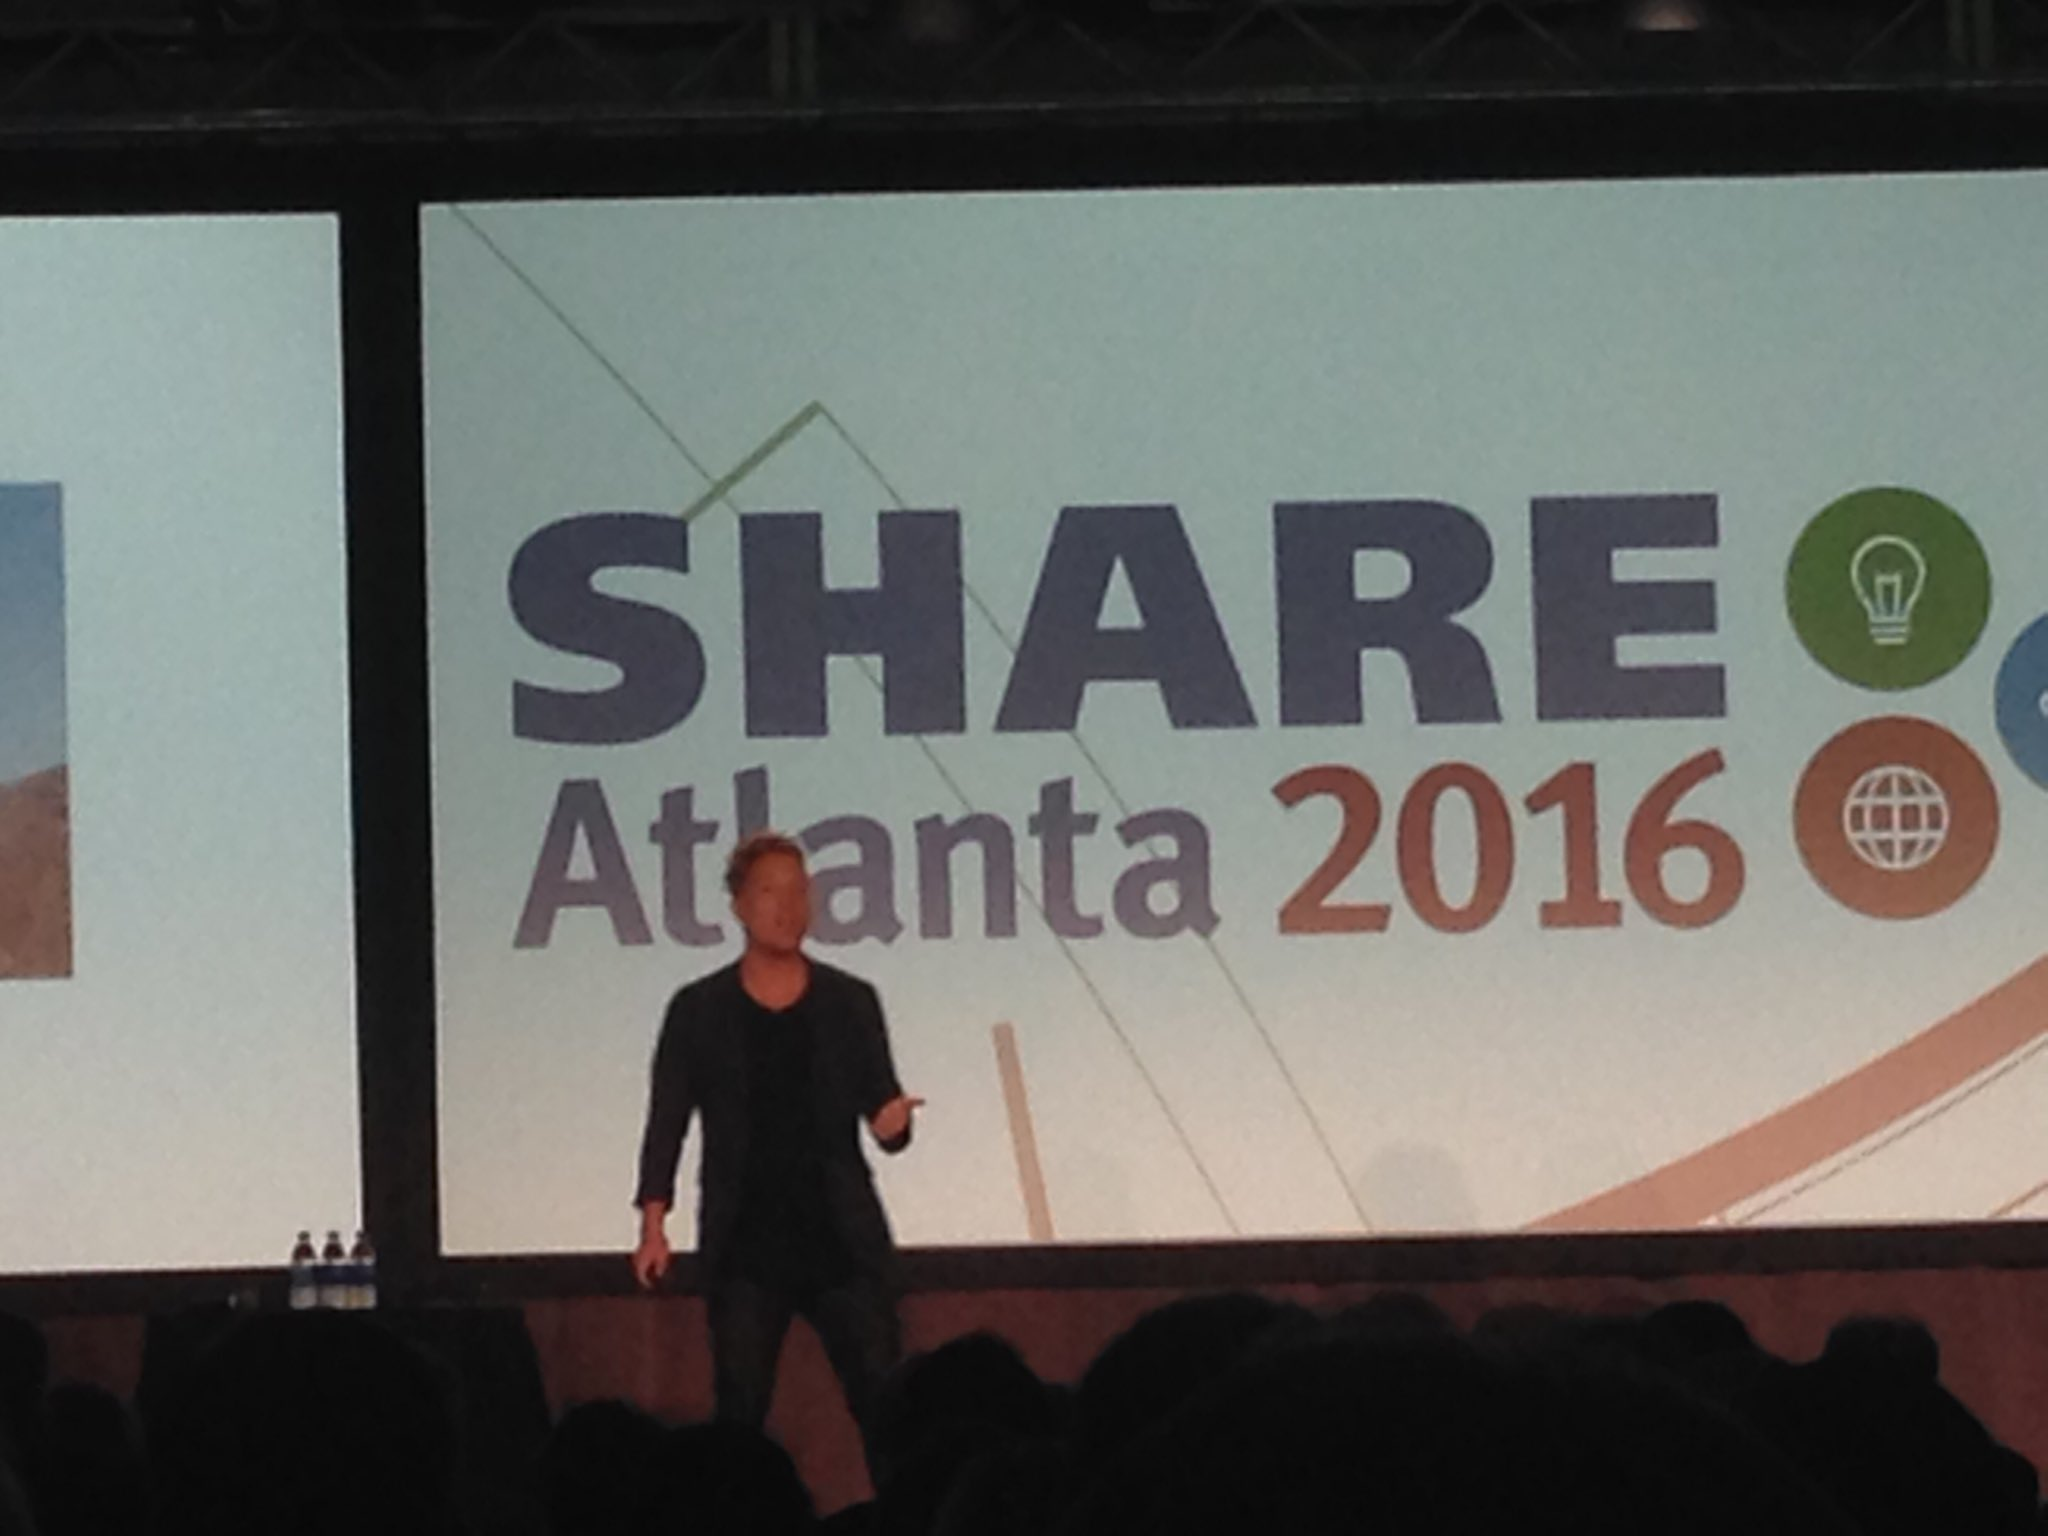 @shanesnow talks lateral thinking, small wins and innovation @ #SHAREatl https://t.co/6ytN40kOCO